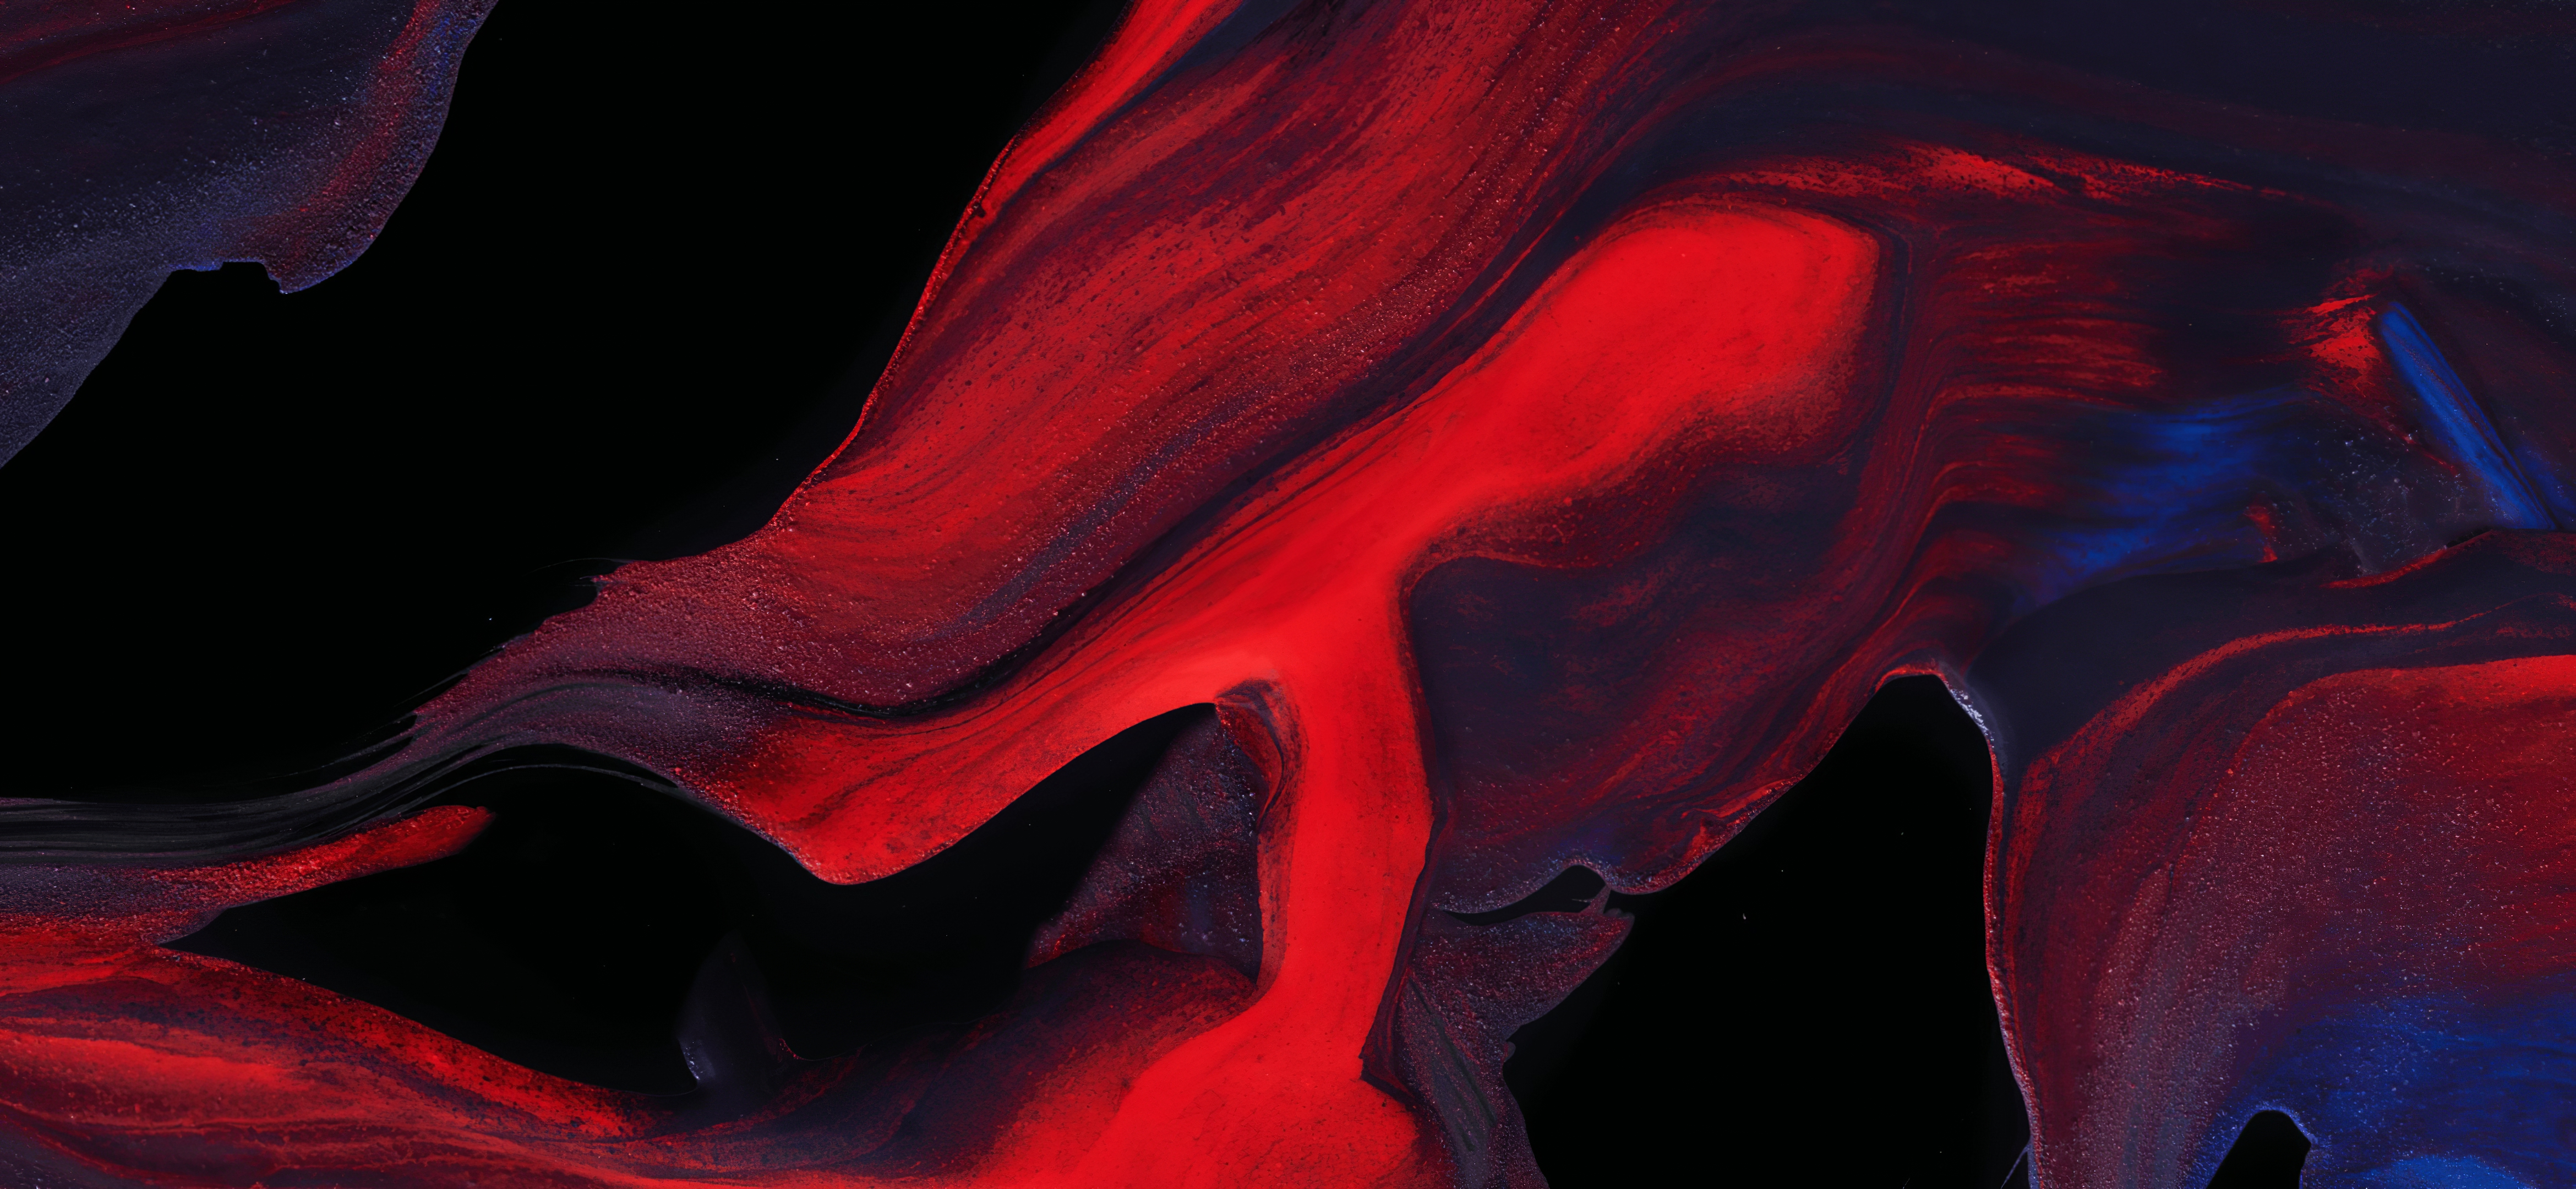 Lava 4k Wallpaper Red Coloros Stock Abstract 362